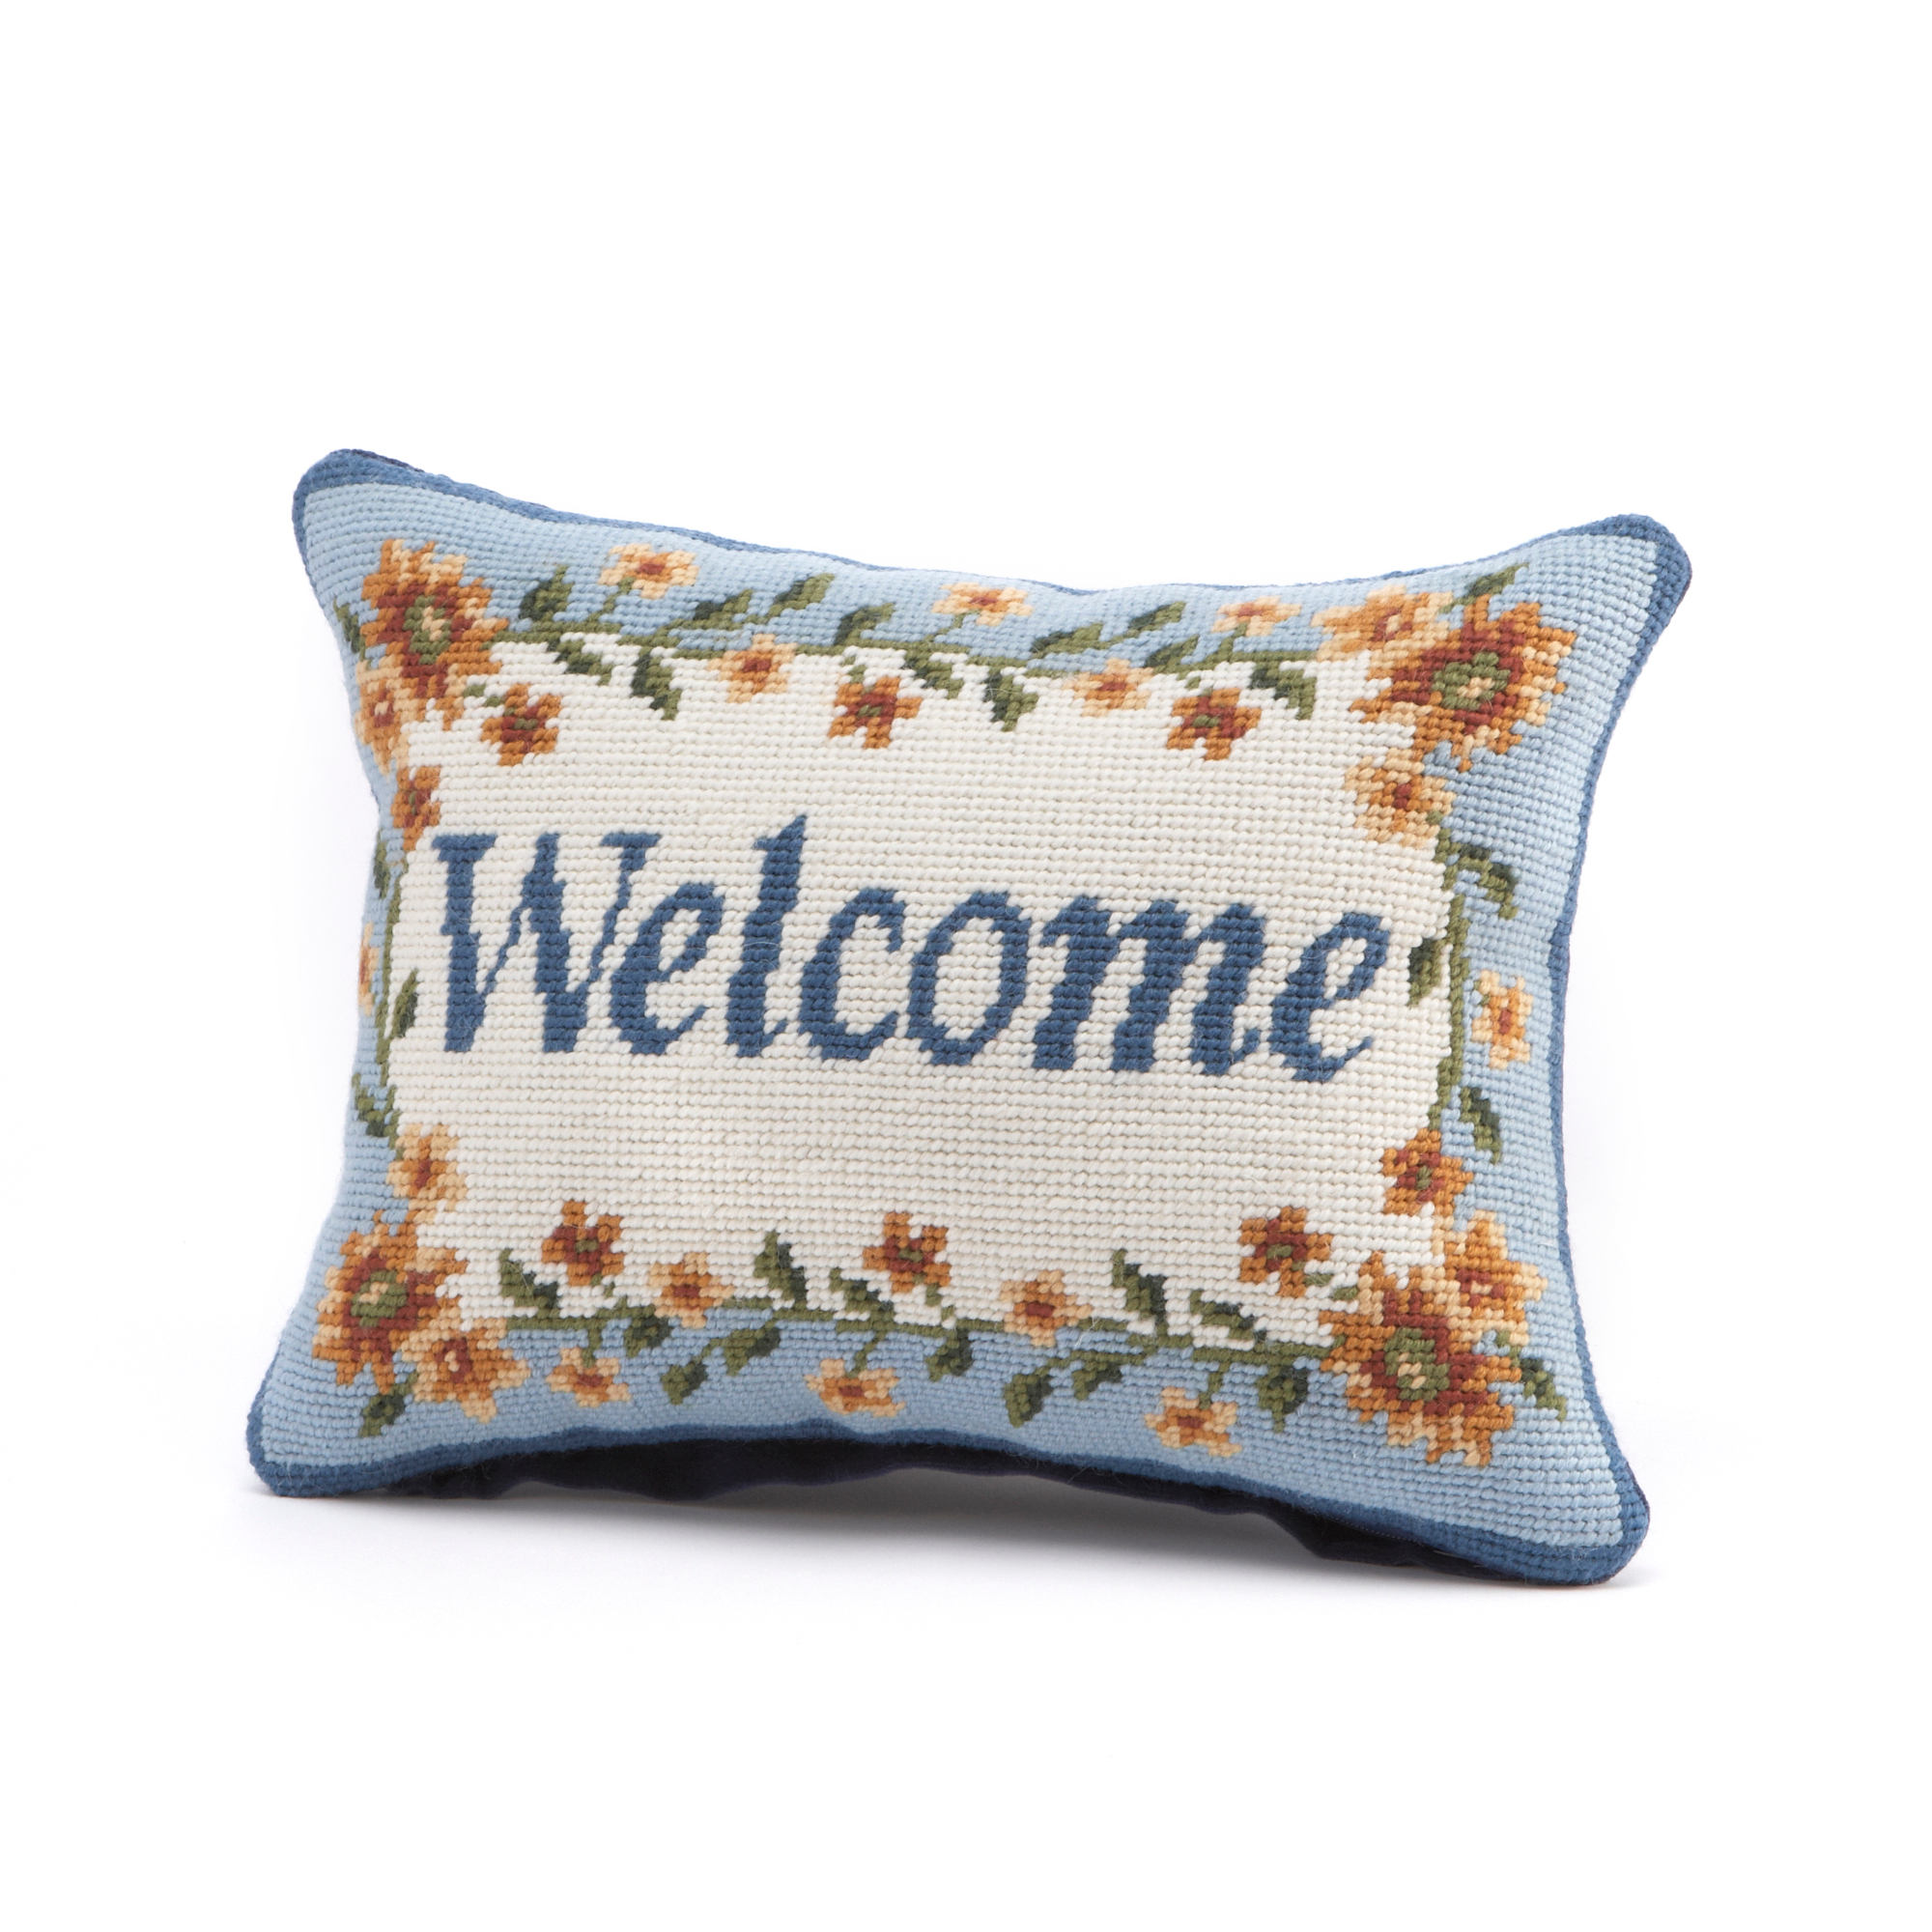 Welcome Needlepoint Pillow